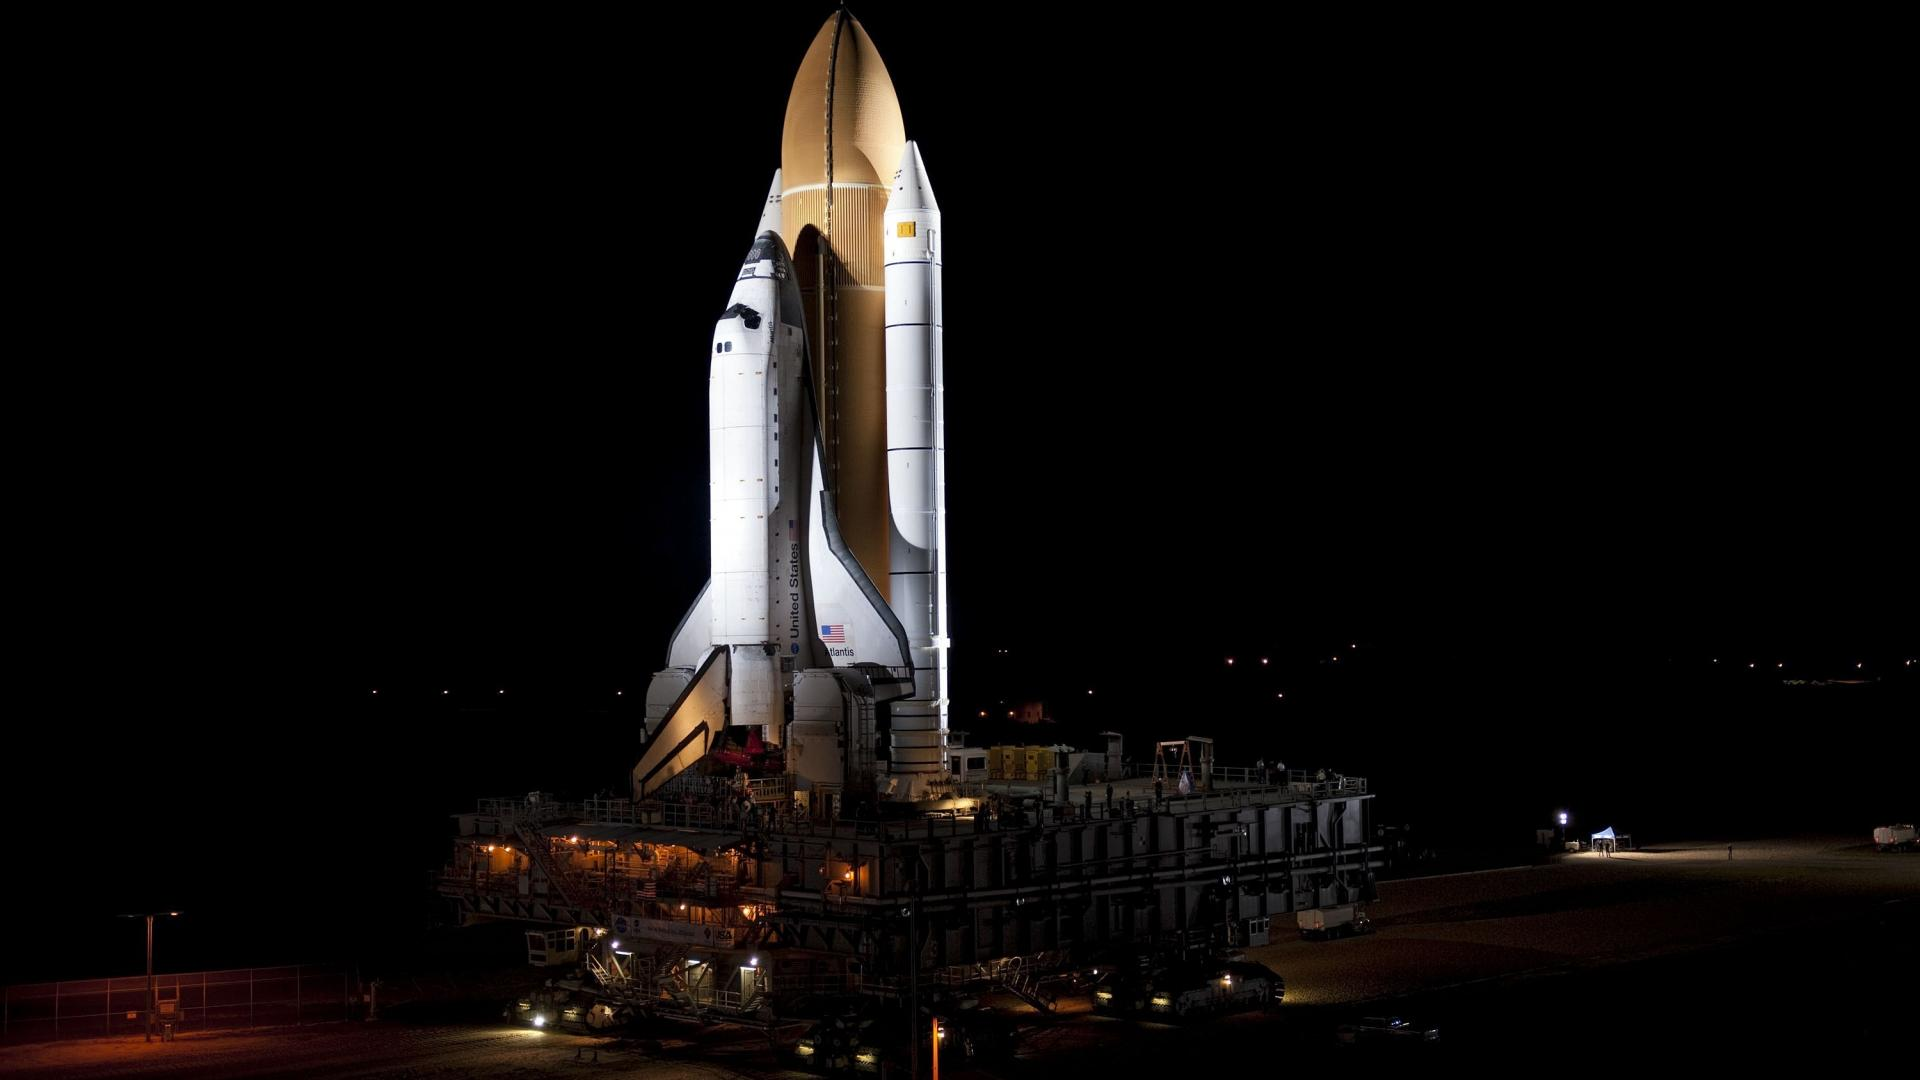 Space shuttle nasa wallpaper